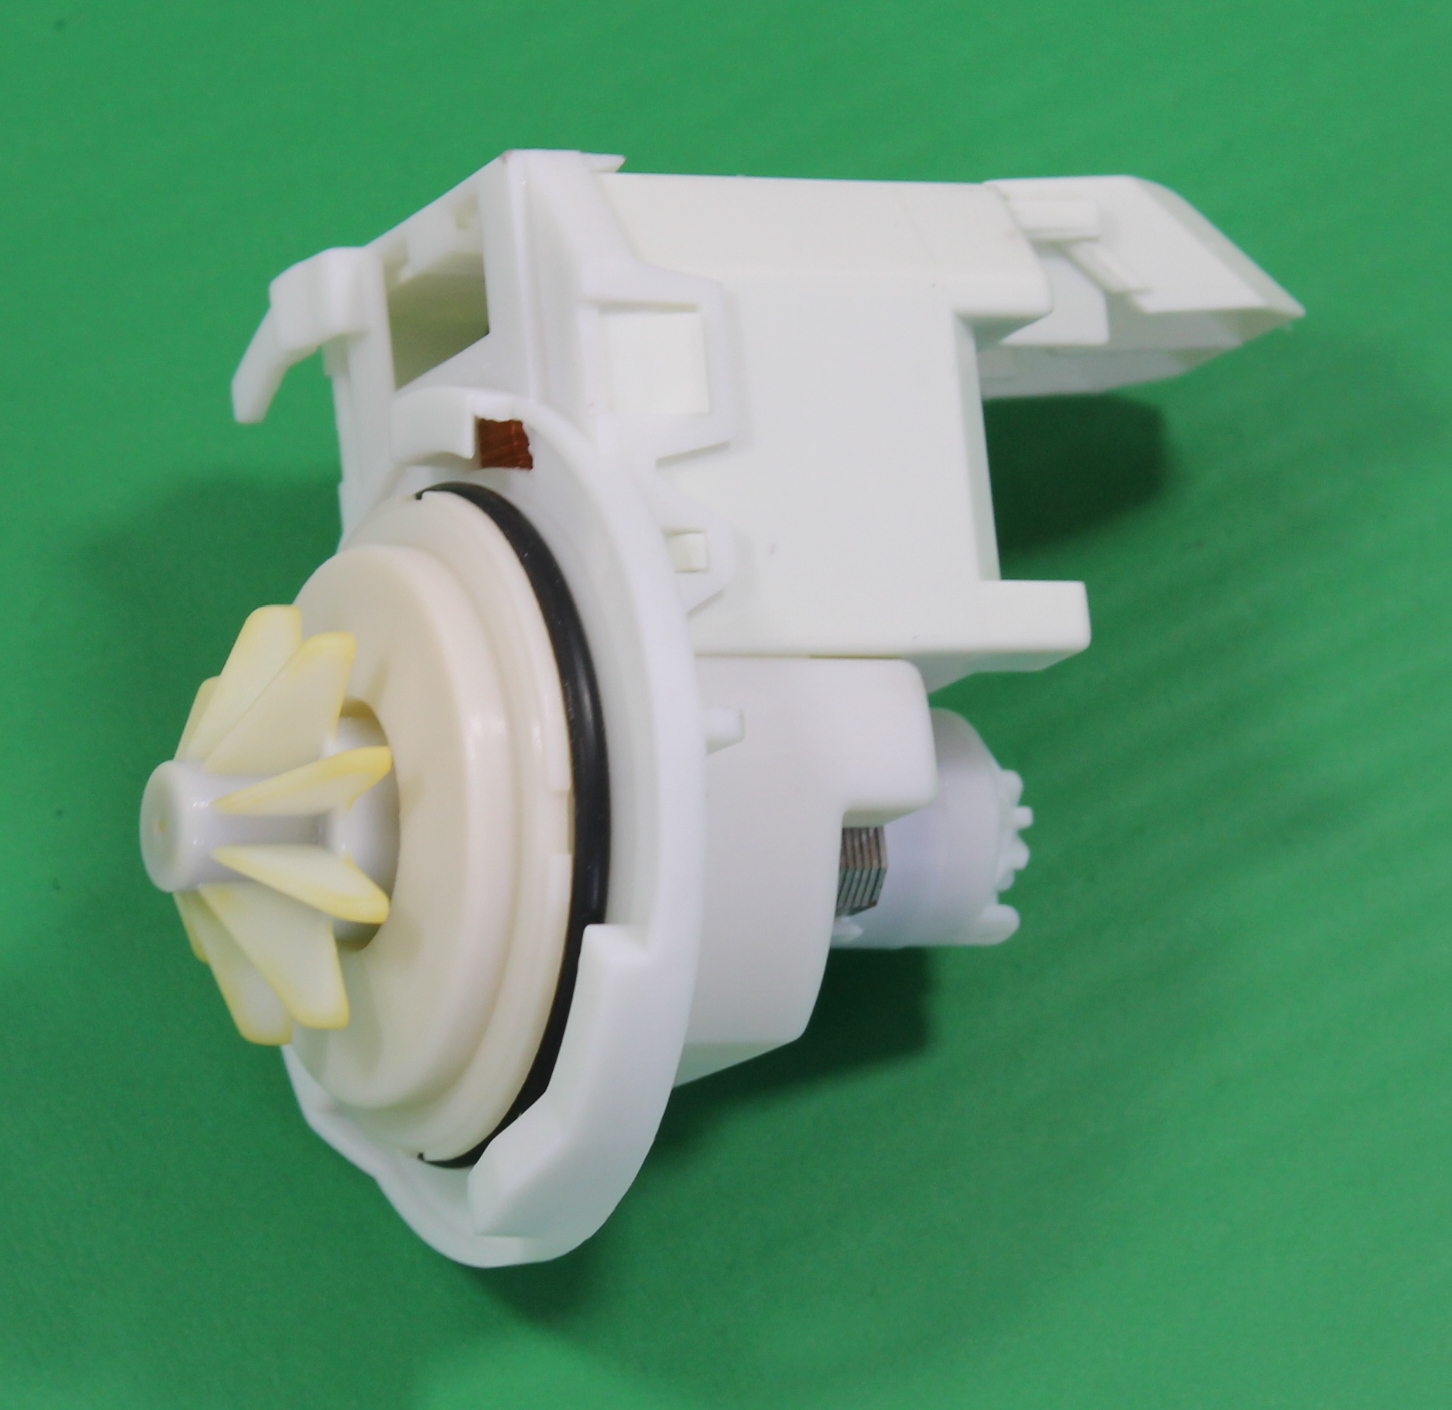 Bosch classixx sgs45c02gb 02 dishwasher drain pump kebs100 110 ebay - Bosch dishwasher pump not draining ...